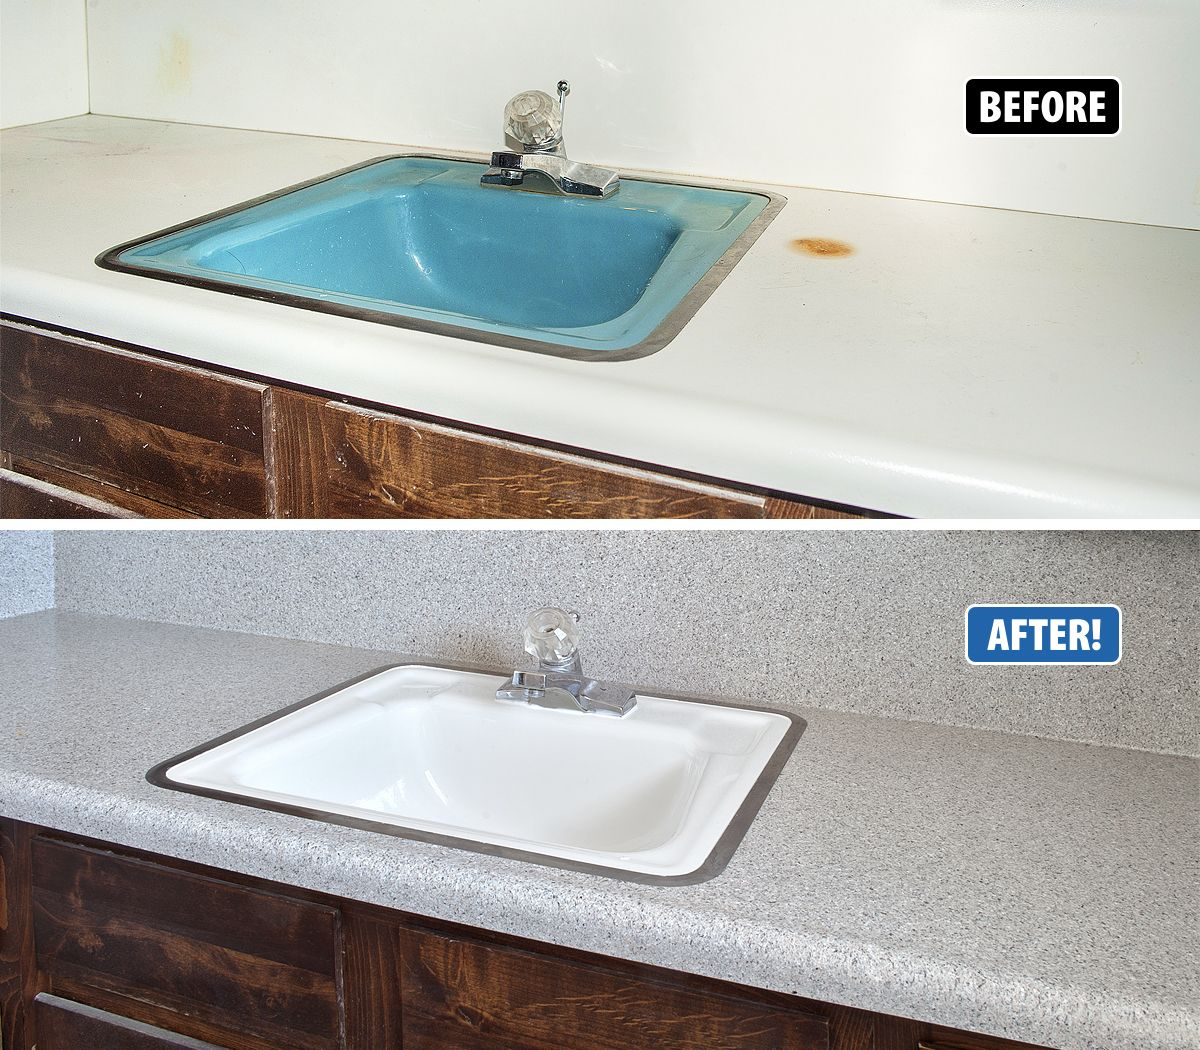 Pin On Countertop Refinishing